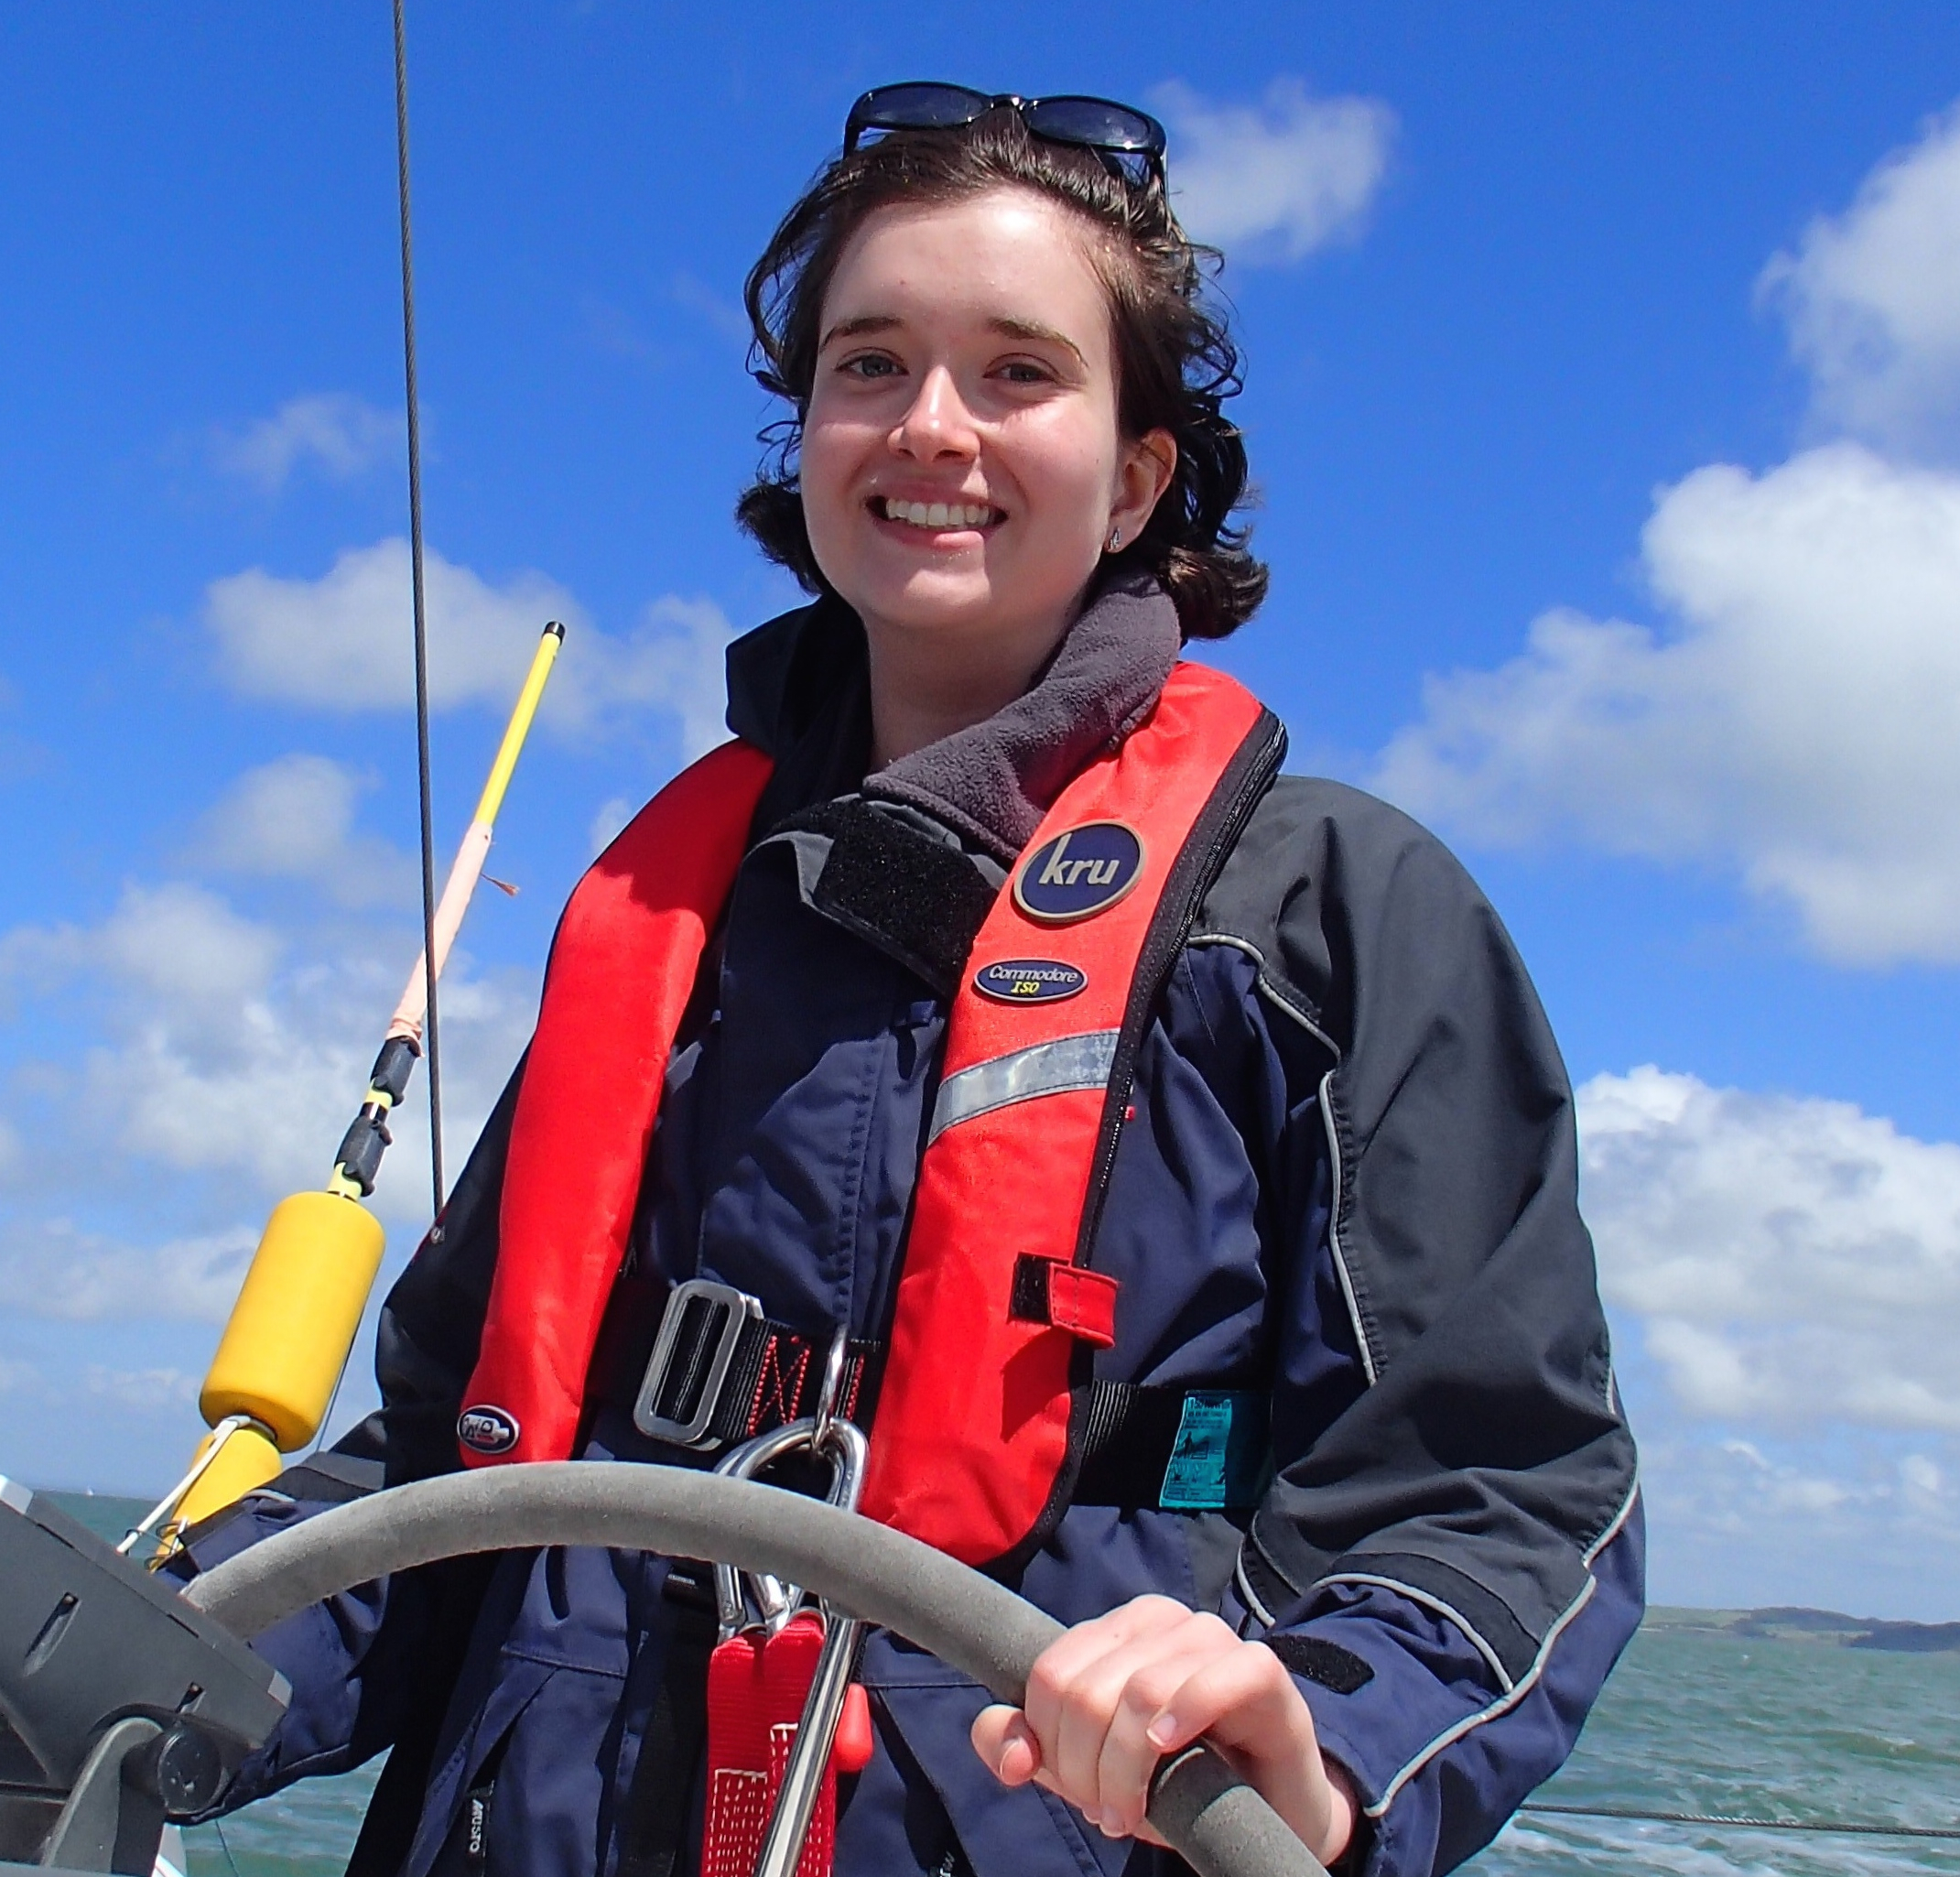 Woman who battled cancer takes on 'inspirational' sailing trip